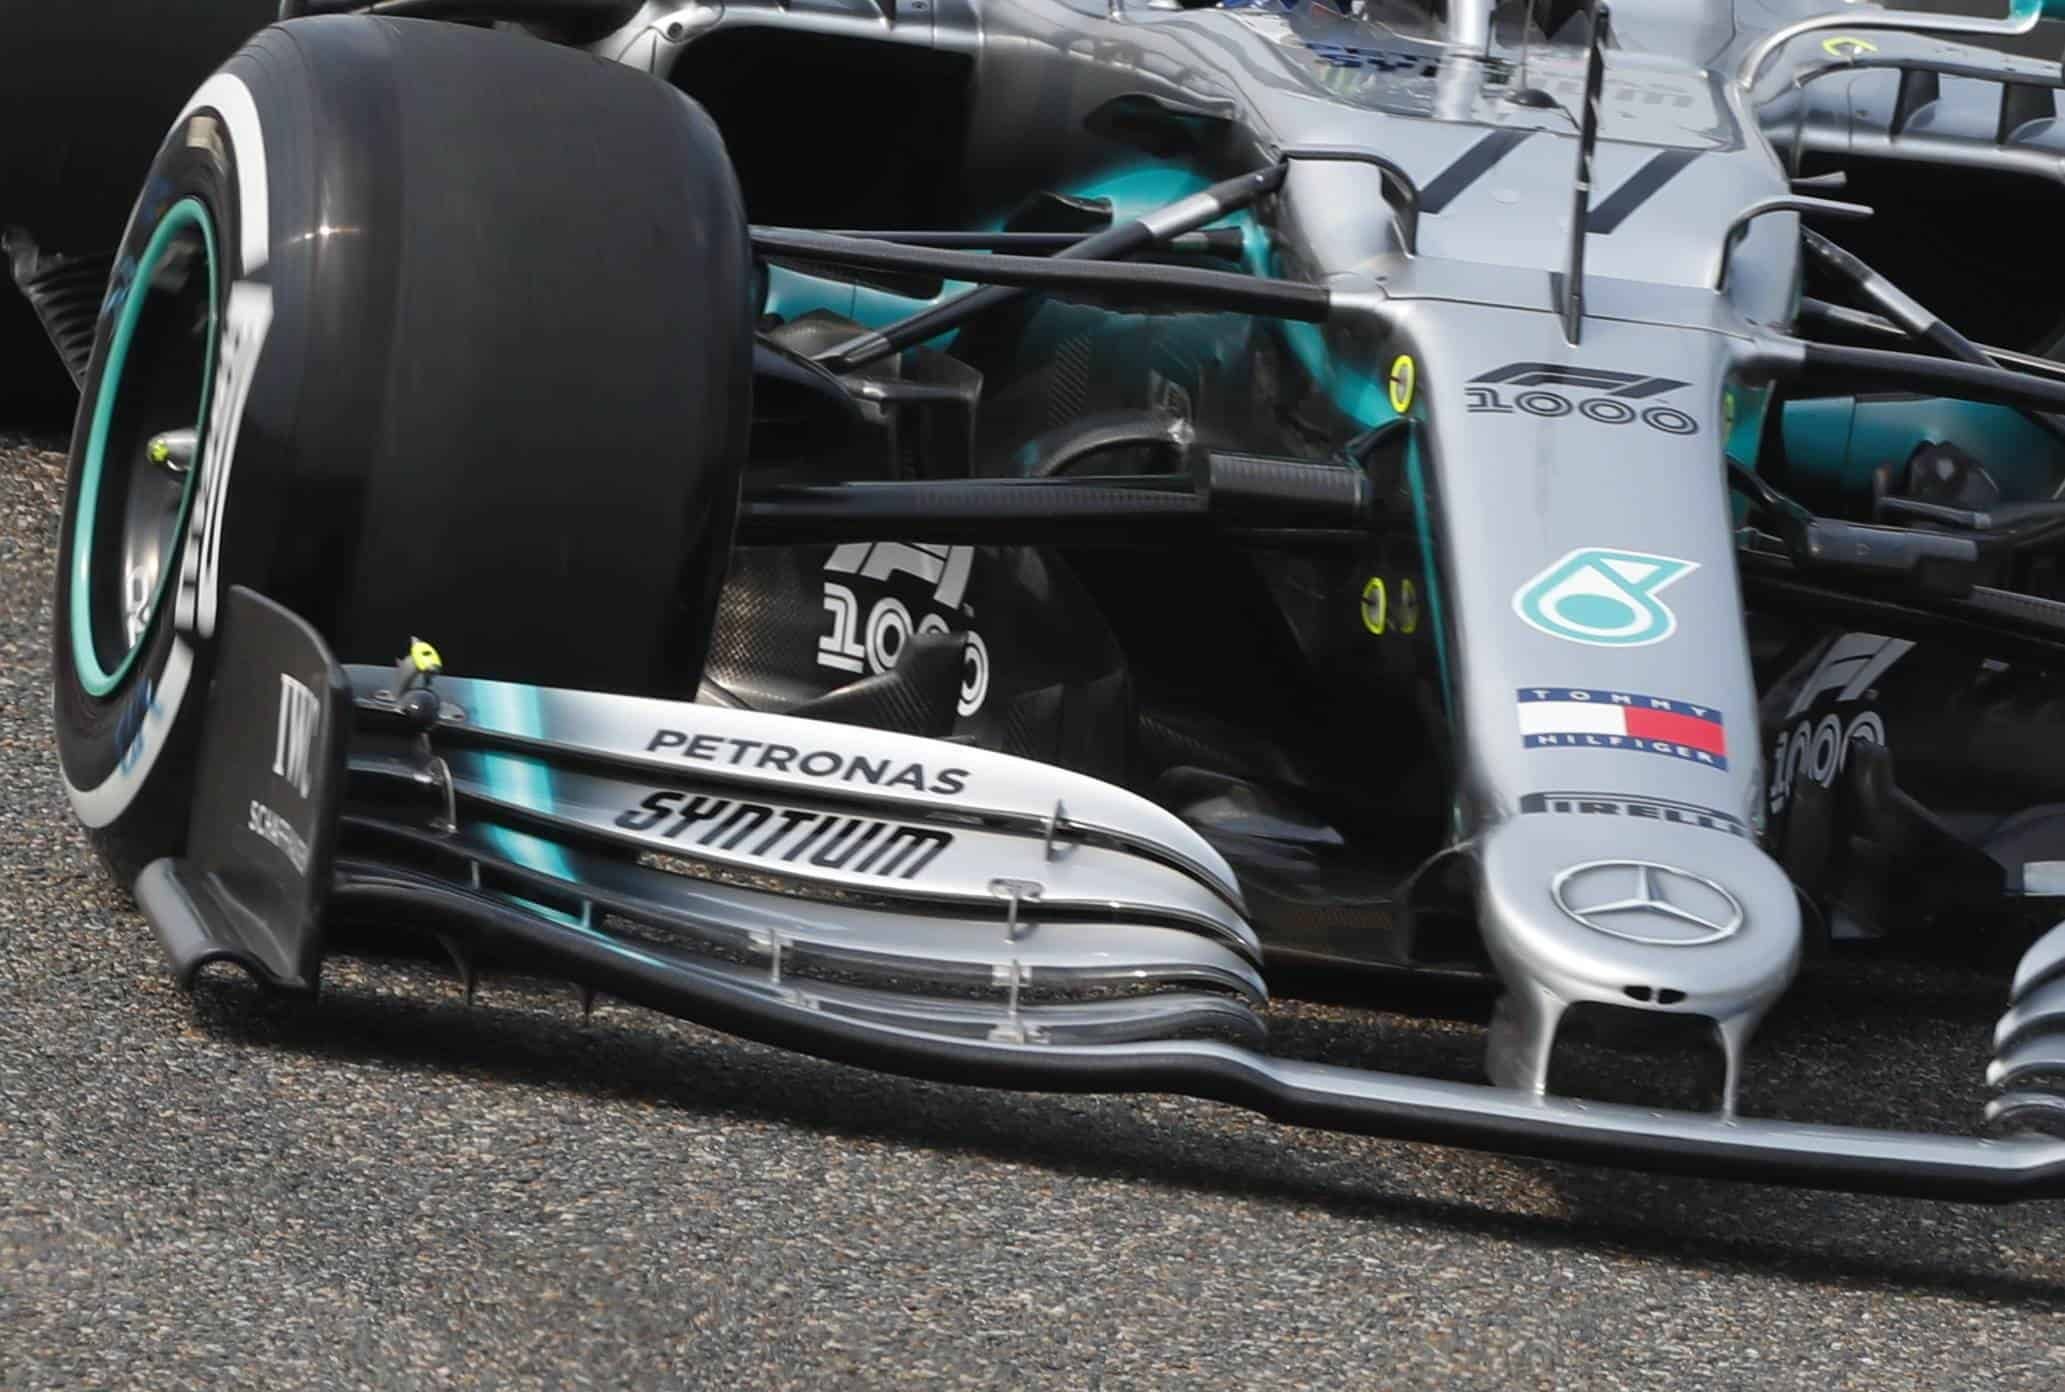 Mercedes F1 W10 new front wing endplate Chinese GP F1 2019 Photo Daimler Edited by MAXF1net